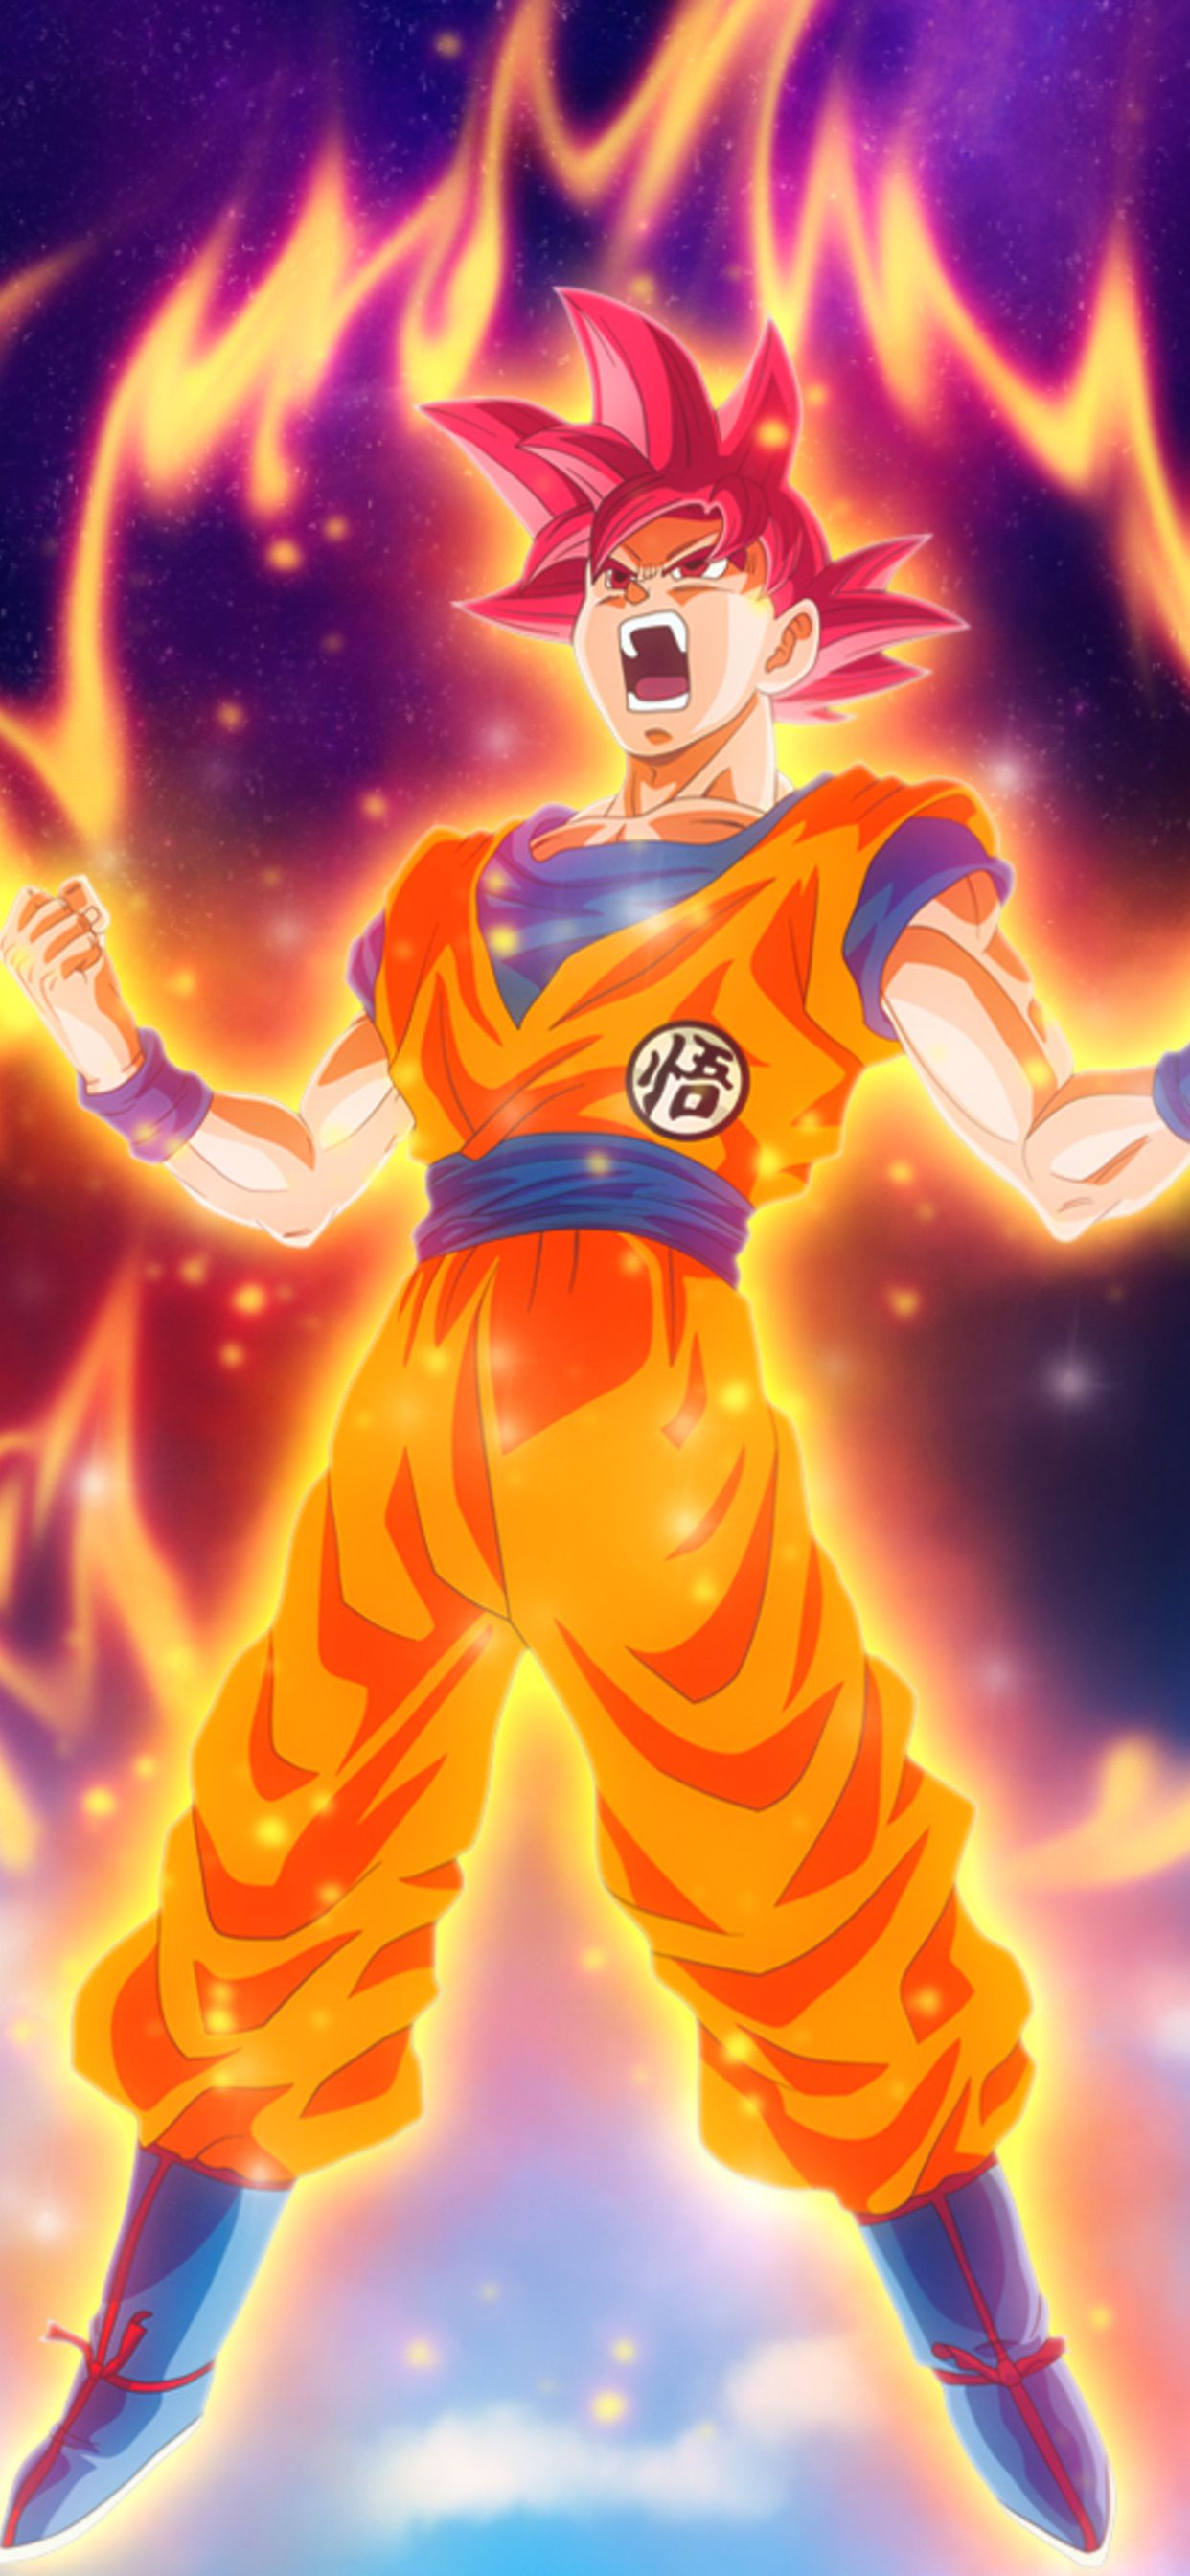 Dragon Ball Z Iphone Xs Max Wallpaper 3d Wallpapers Dragon Ball Wallpapers Dragon Ball Wallpaper Iphone Anime Dragon Ball Super